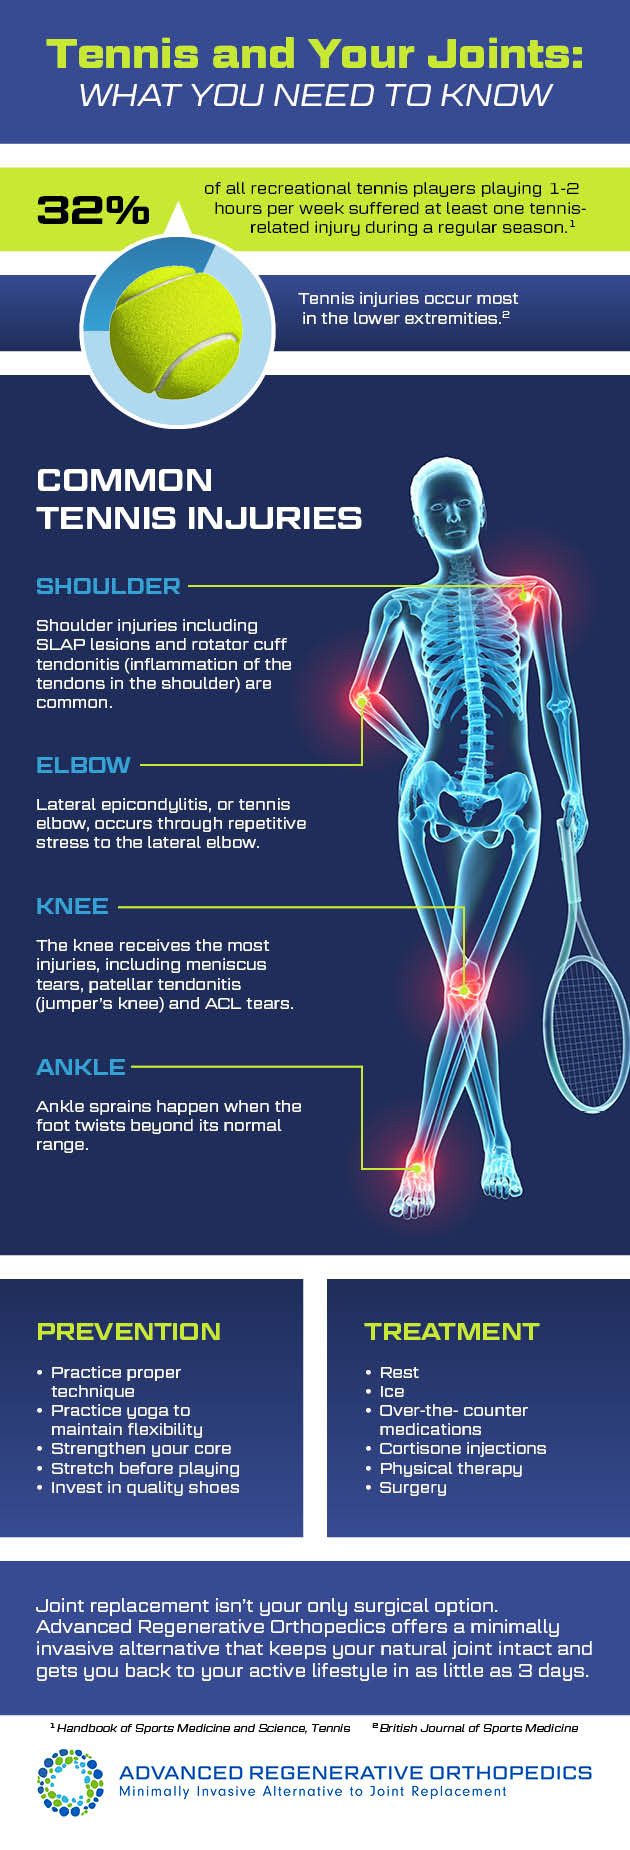 Tennis and Your Joints infographic